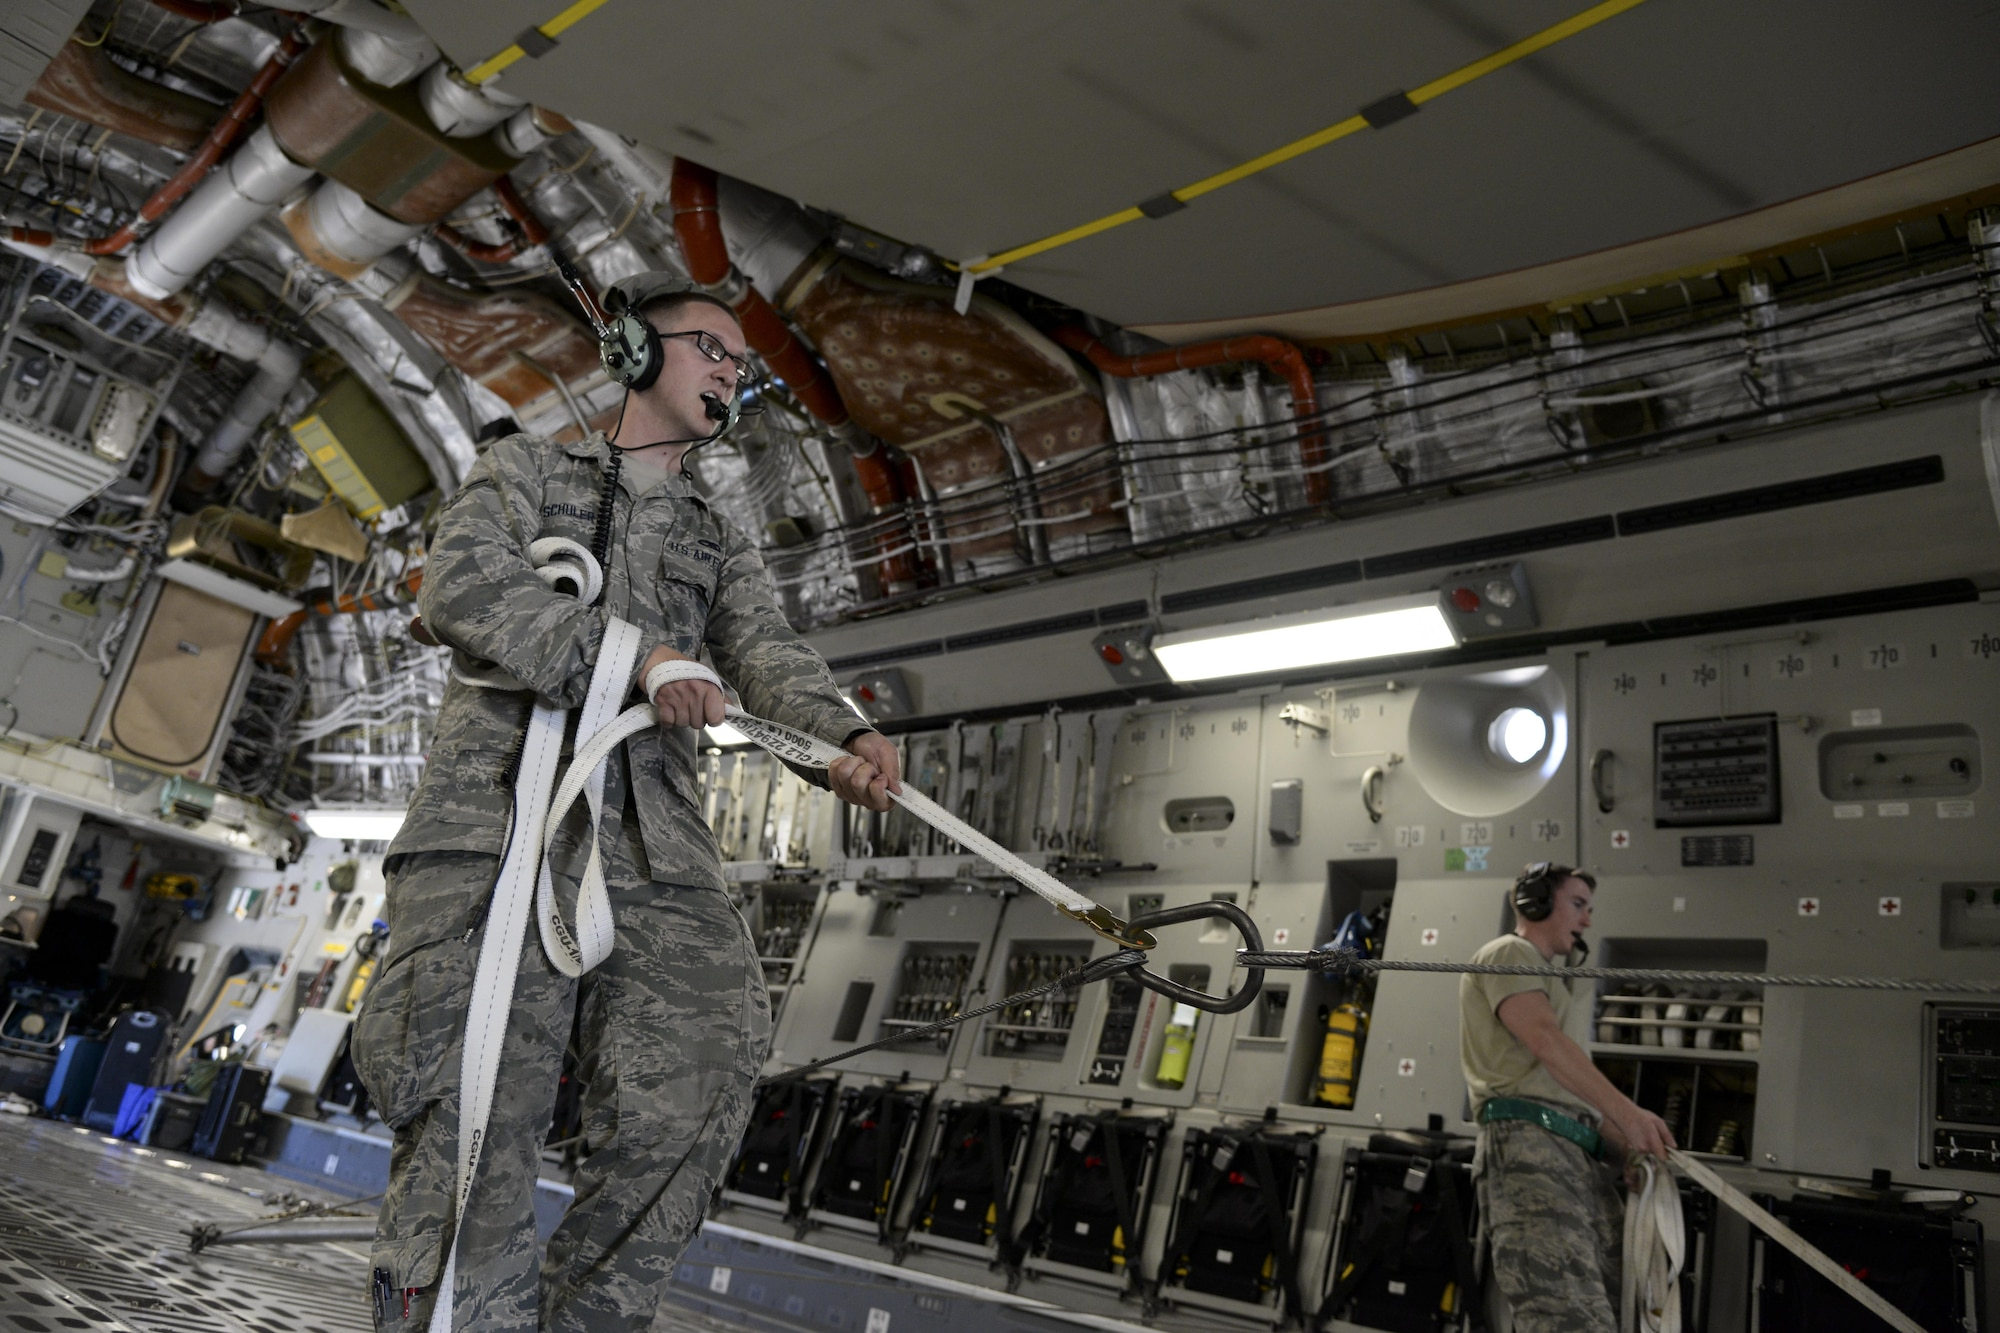 Airman 1st Class Isaac Schuler, 723d Aircraft Maintenance Squadron, 41st Helicopter Maintenance Unit electronic warfare technician assigned to Moody Air Force Base, Ga., guides an HH-60G Pave Hawk search and rescue helicopter May 16, 2017, as it is offloaded from a 3d Airlift Squadron C-17 Globemaster III at Langley Air Force Base, Va. The Airmen worked in unison to ensure the helicopter was safely off-loaded. (U.S. Air Force photo by Senior Airman Aaron J. Jenne)